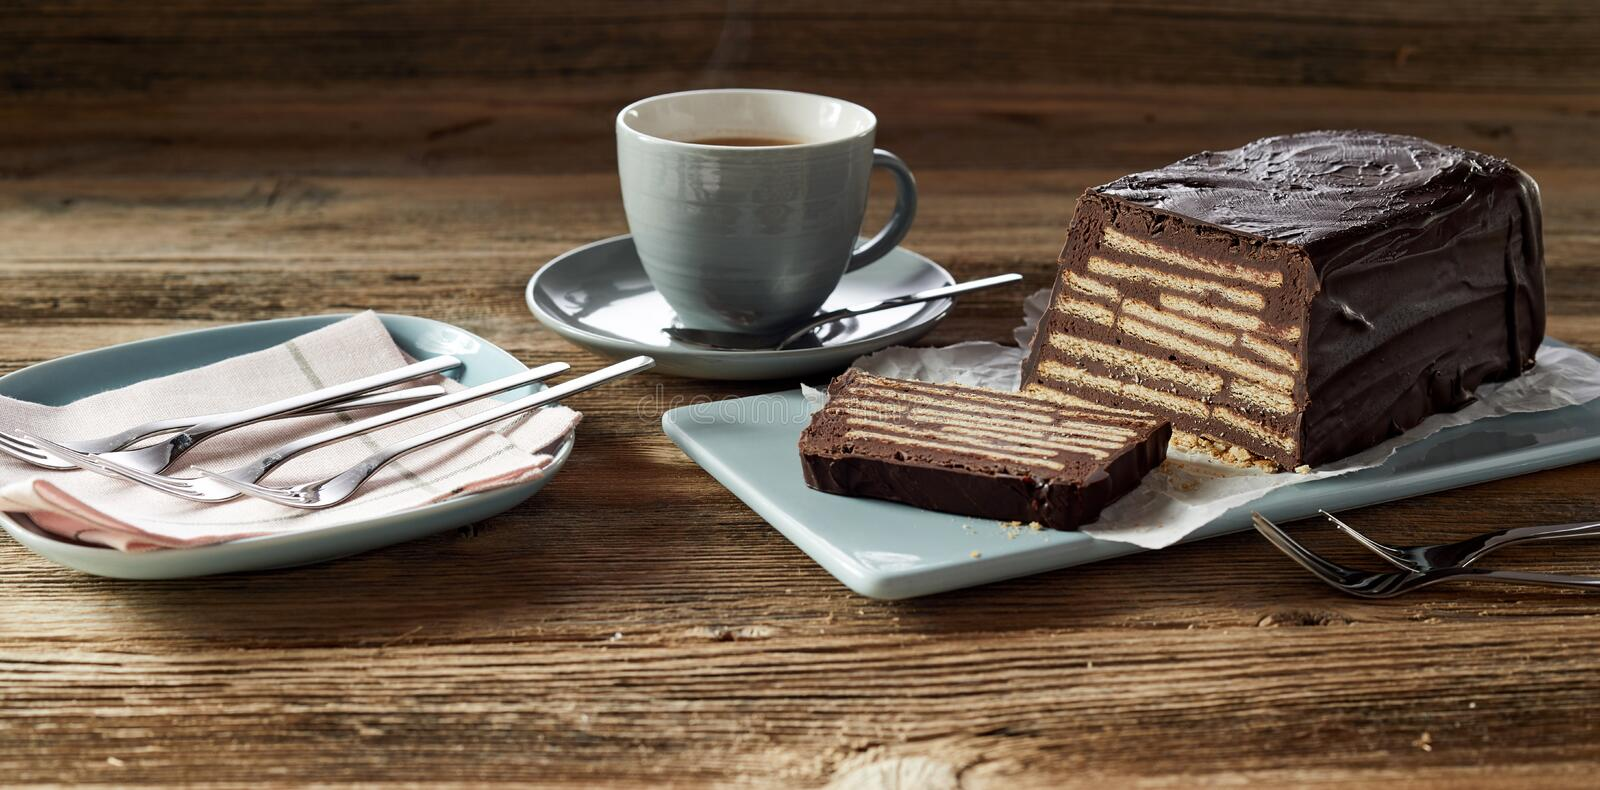 Chocolate bar cake with coffee. Chocolate bar cake Kalter Hund, served with coffee and forks on blue ceramic plate on rustic unpainted wooden table surface stock photo